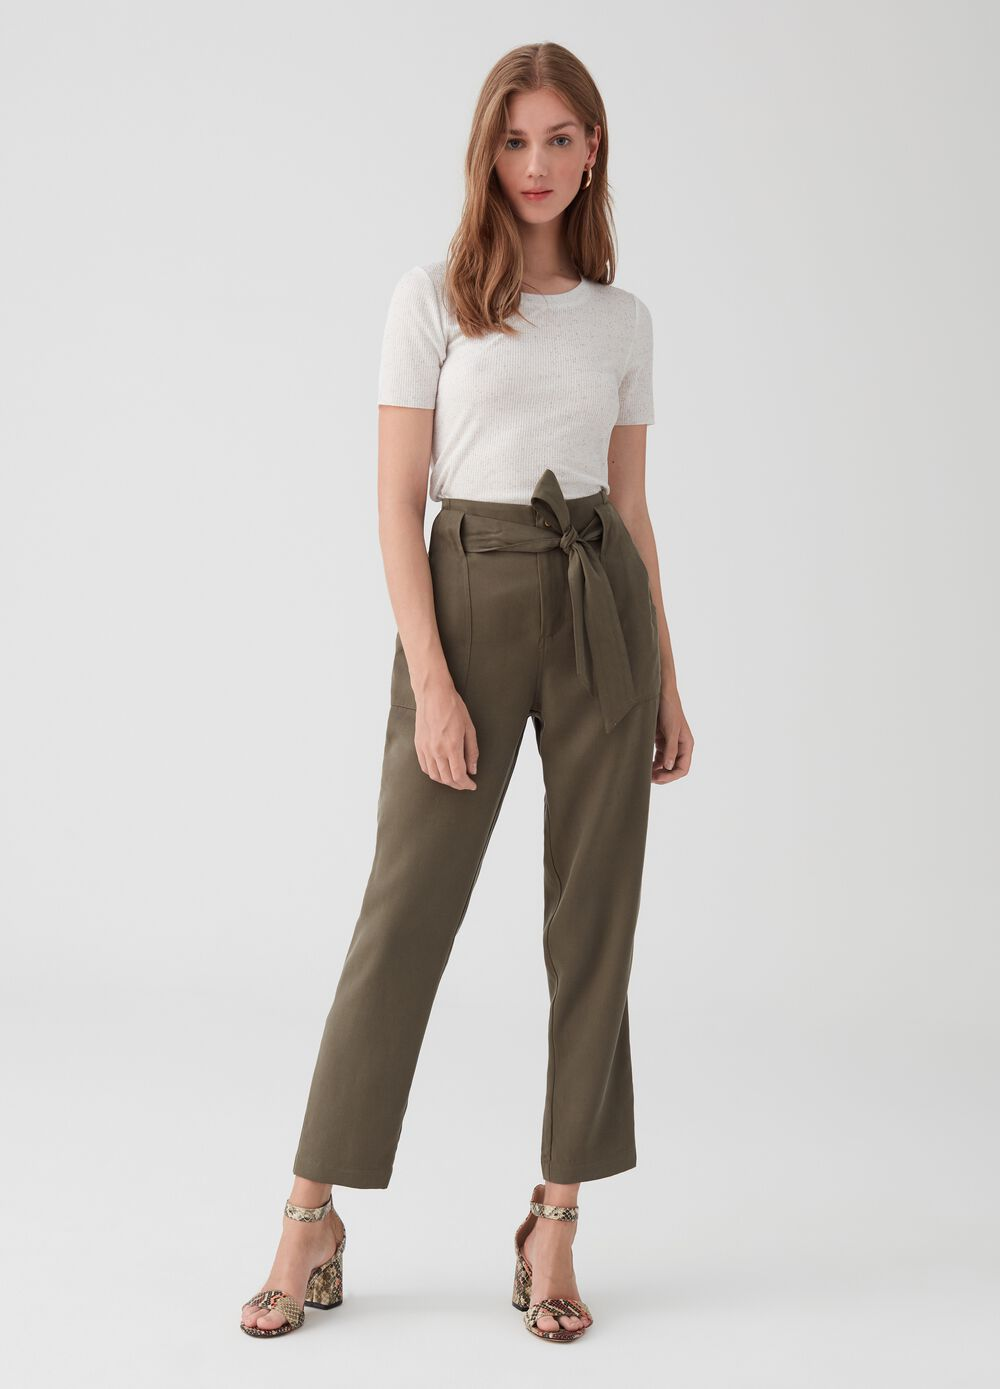 Trousers in 100% lyocell with belt